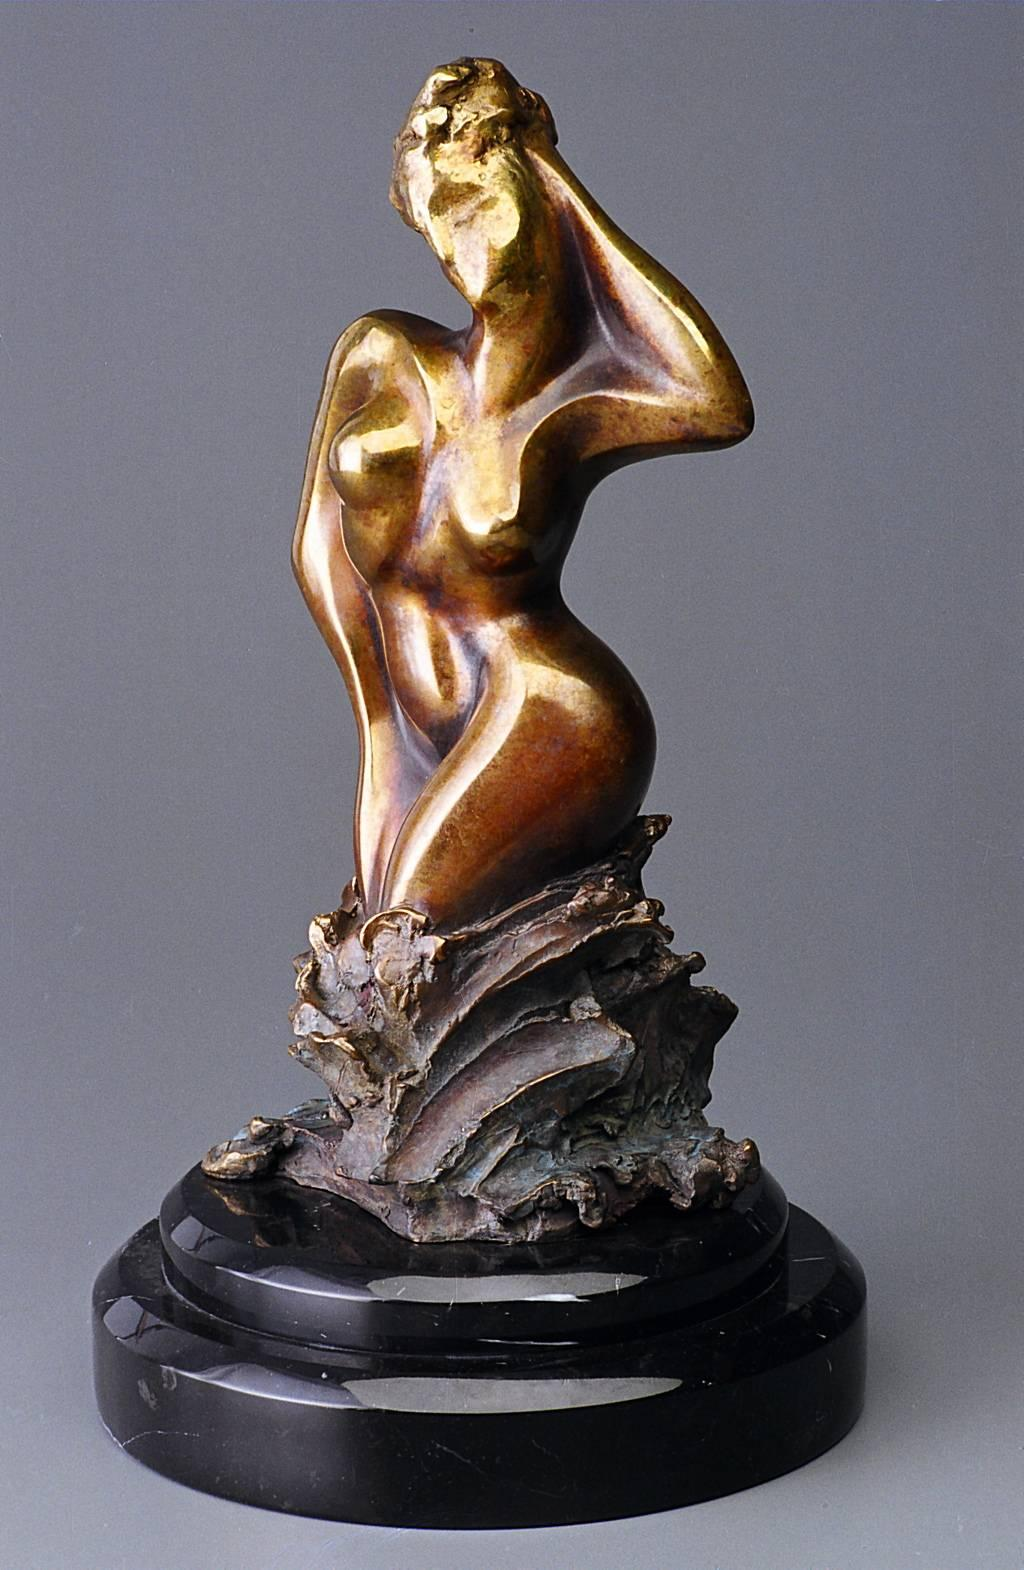 Aphrodite by Shray, Bronze Abstract Sculpture, Contemporary Sculpture